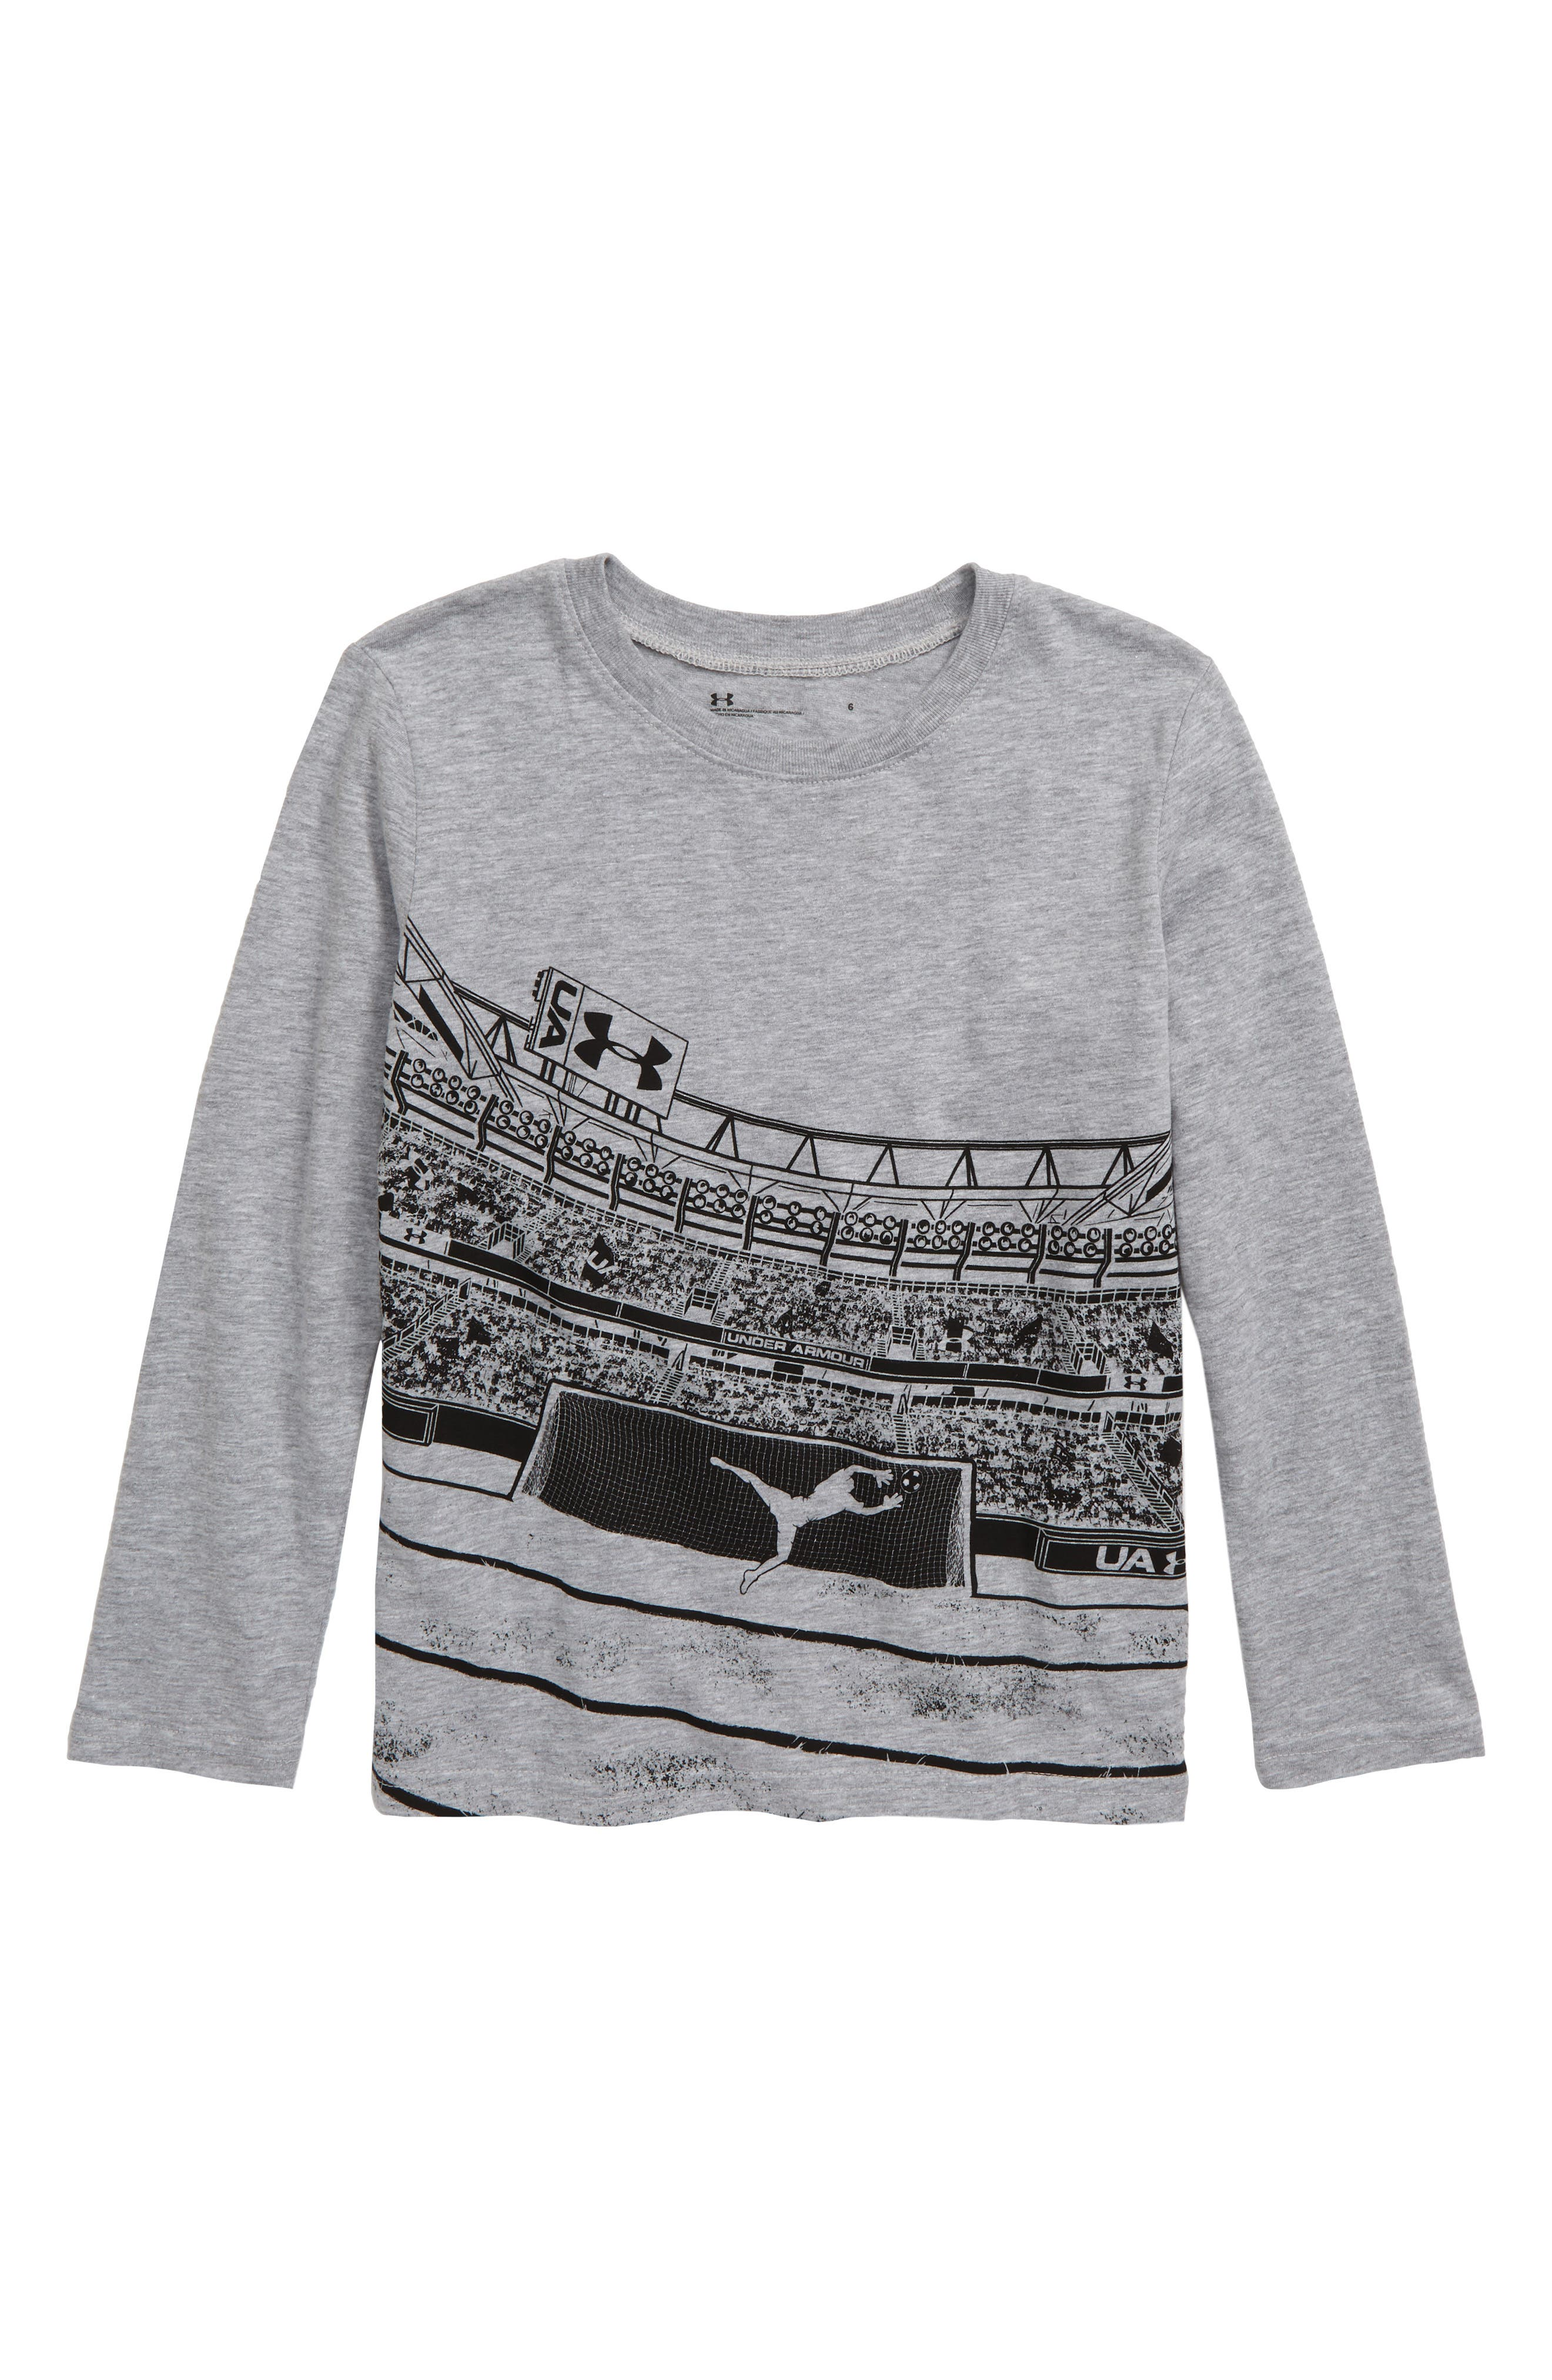 Toddler Boys Under Armour Soccer Graphic TShirt Size 2T  Grey